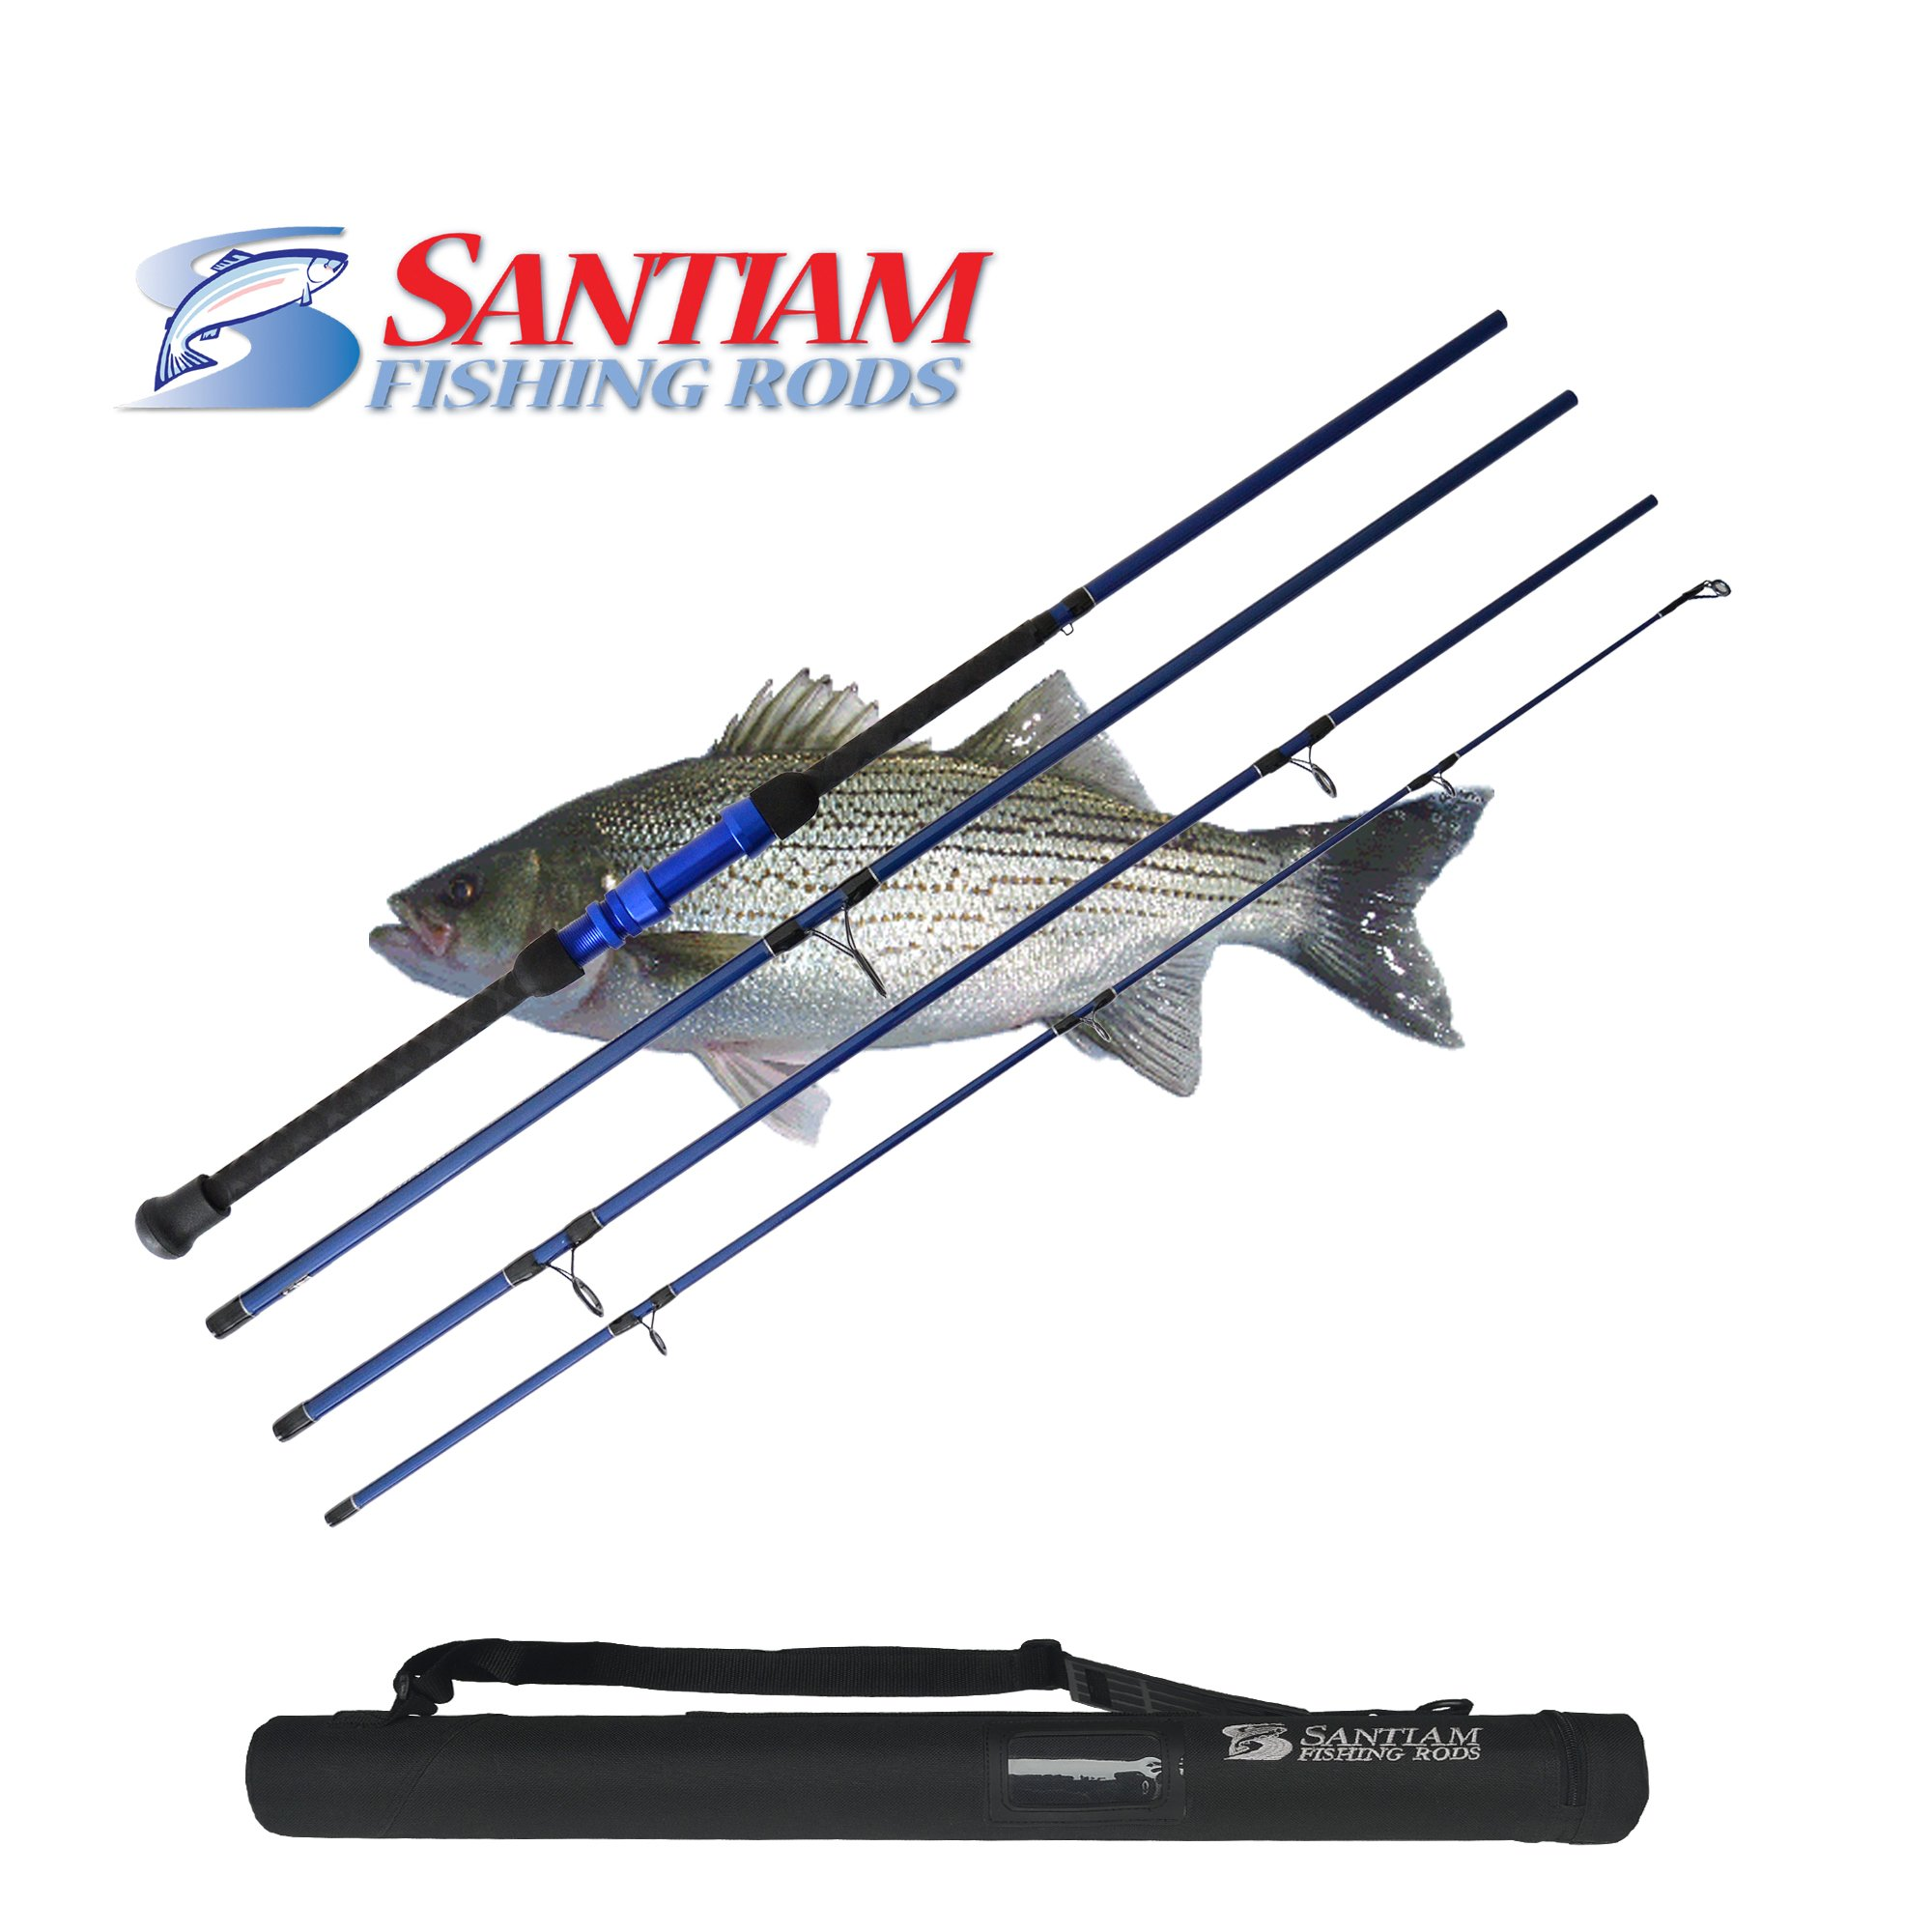 Santiam Fishing Rods Travel Rod 4 Piece 10' 12-25lb Surf Rod by Santiam Fishing Rods